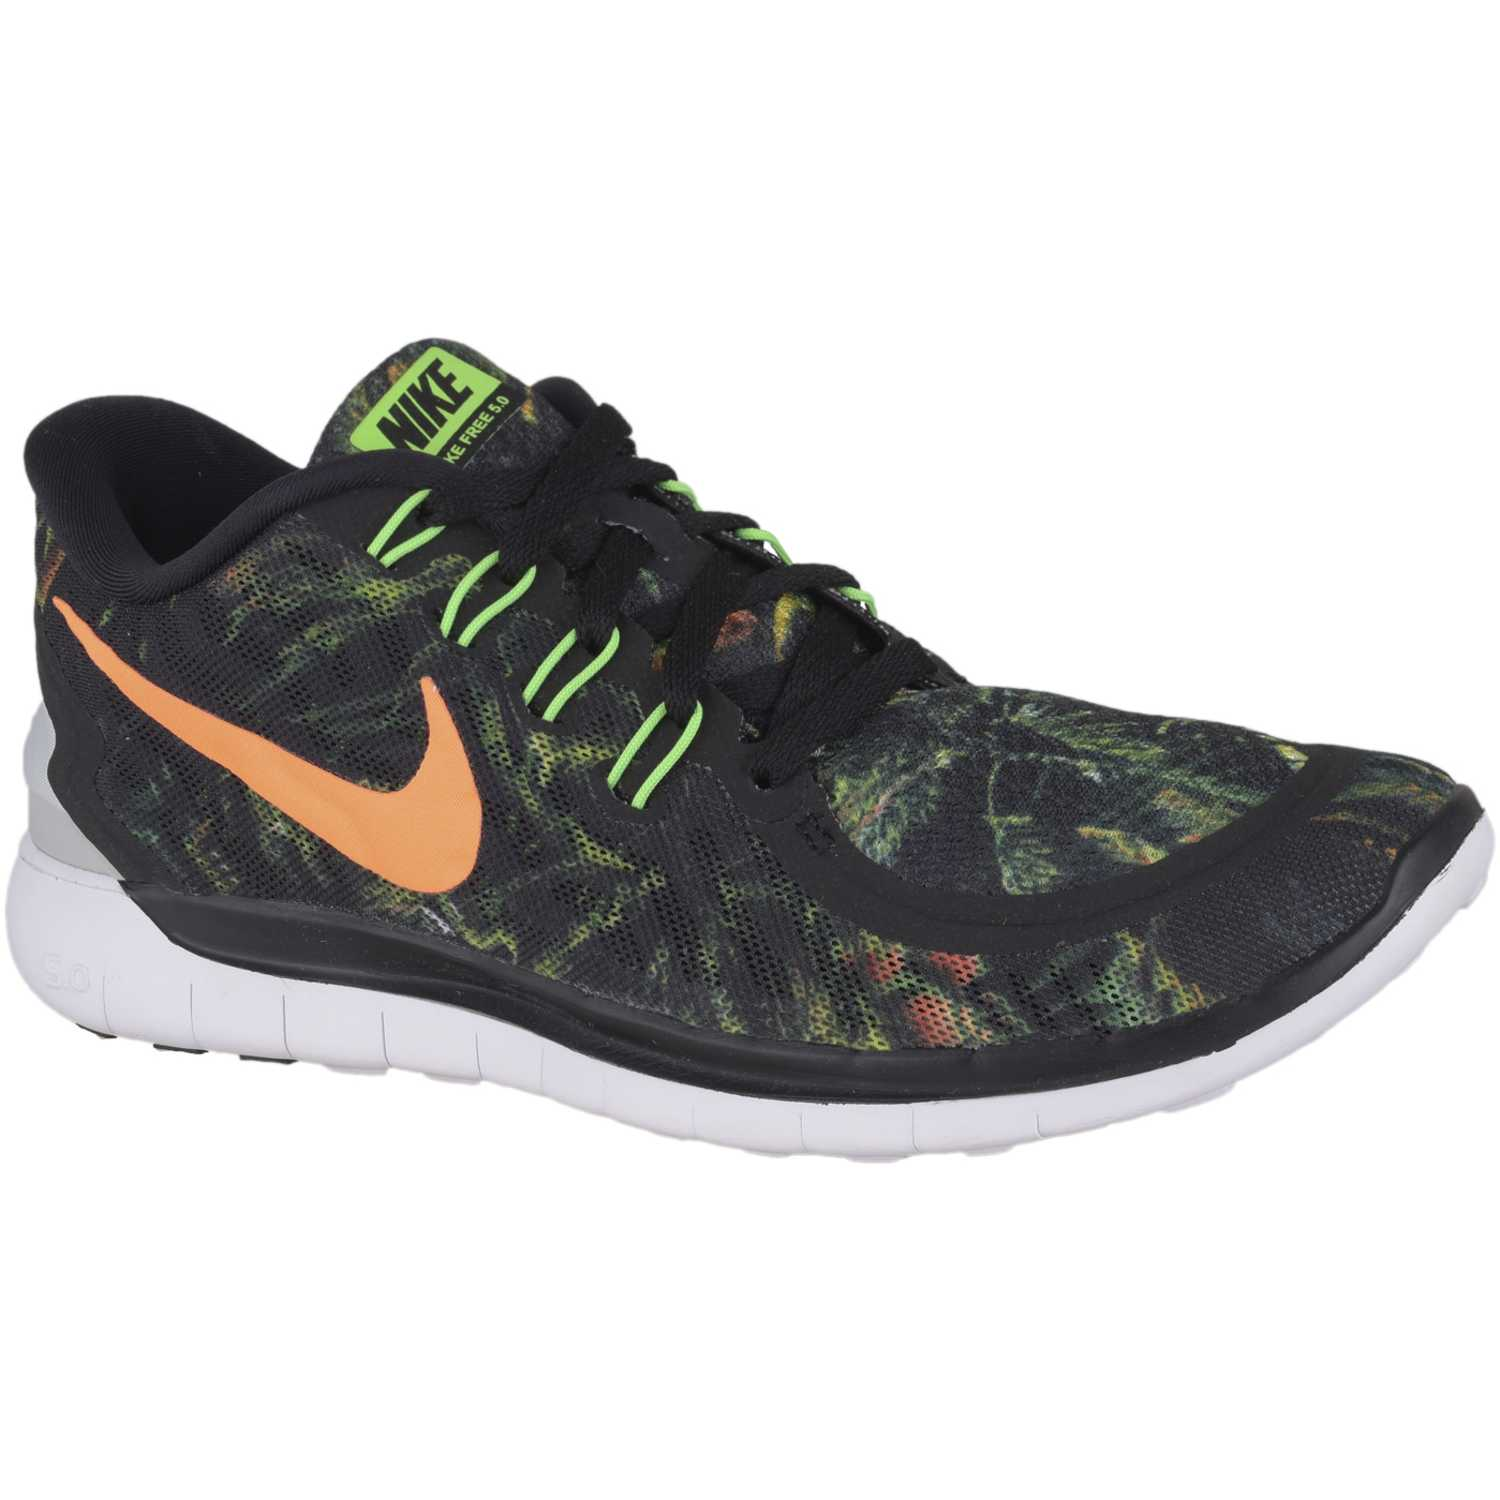 uk availability 6359d 7254c Zapatilla de Mujer Nike Verde  negro wmns free 5.0 solstice